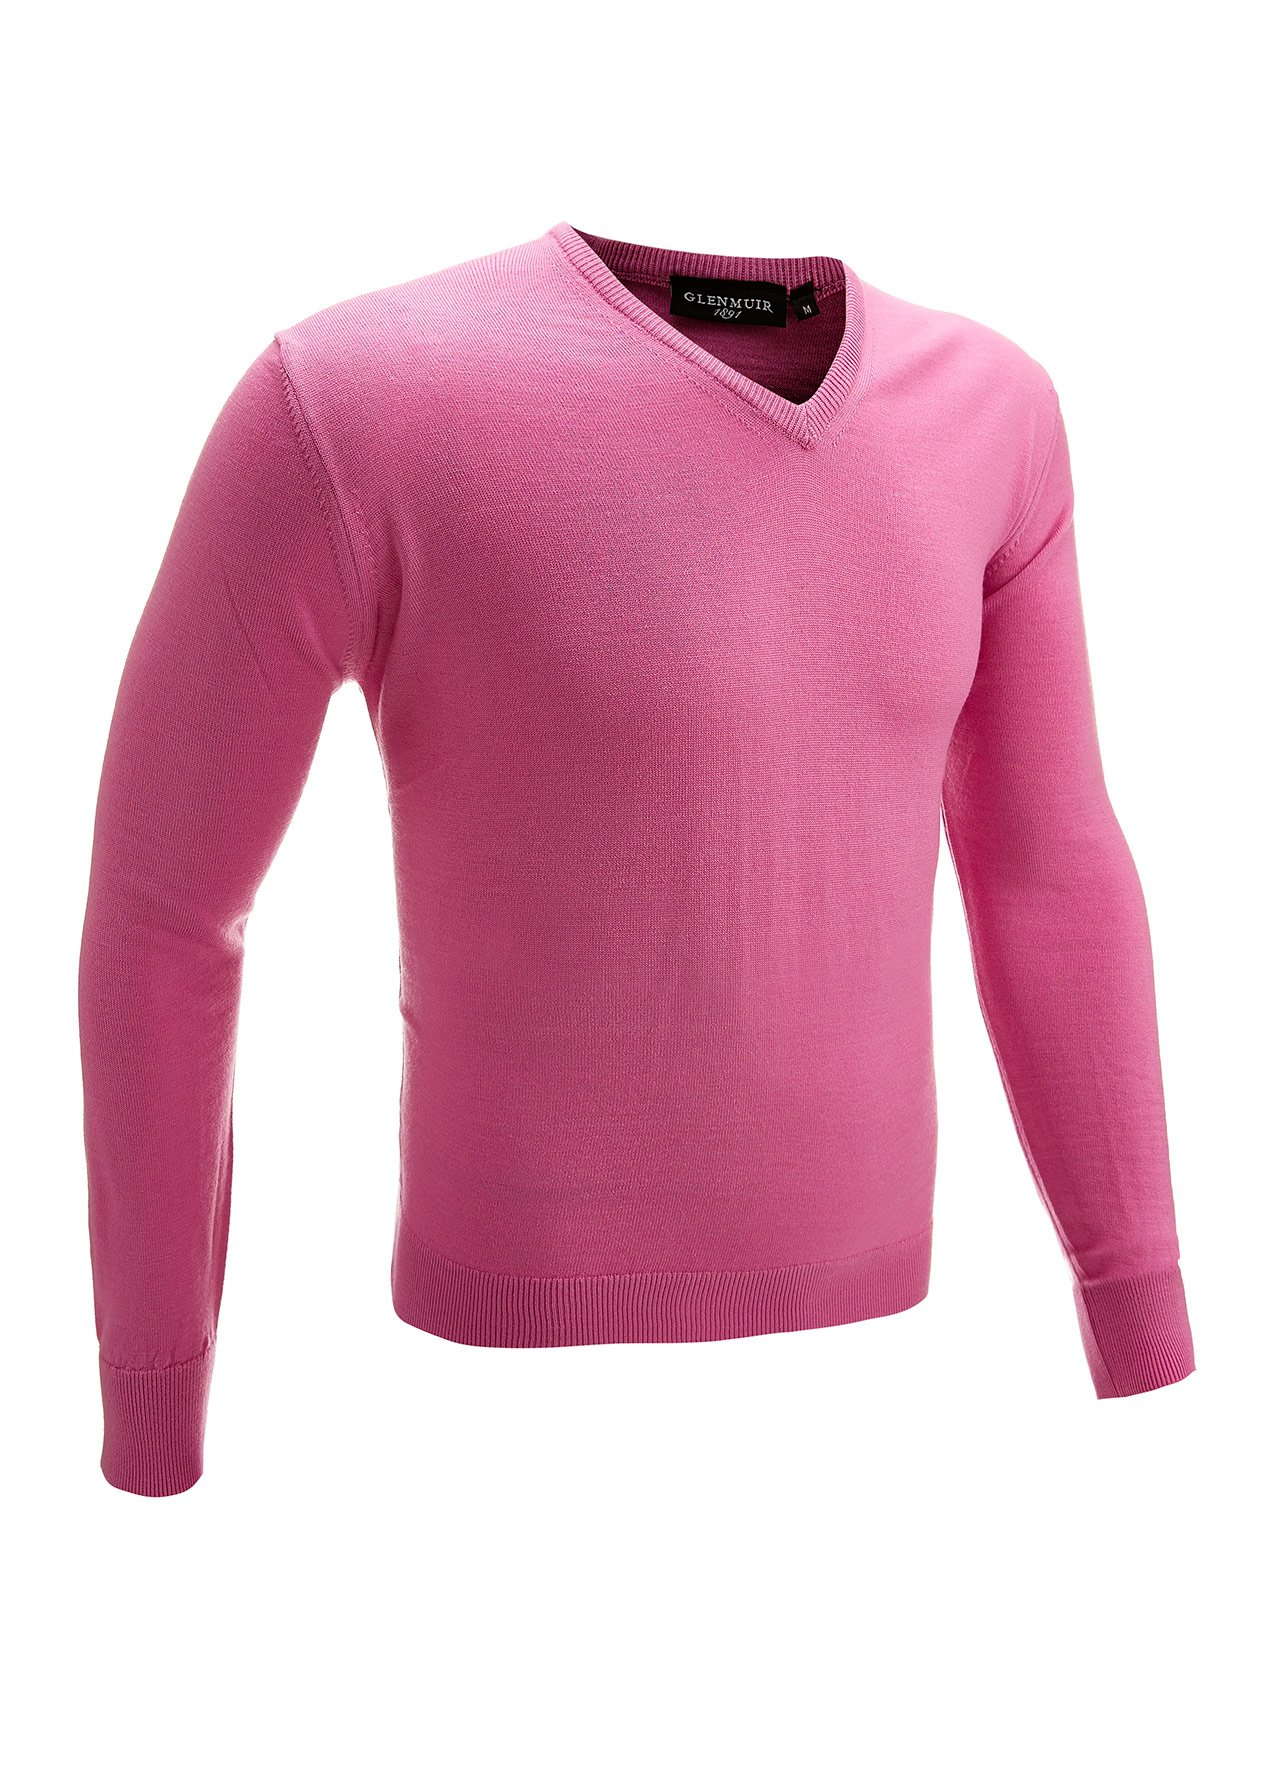 28948dd6c01 Black Friday Deals - Showbiz Glenmuir V-Neck Merino Wool Golf ...